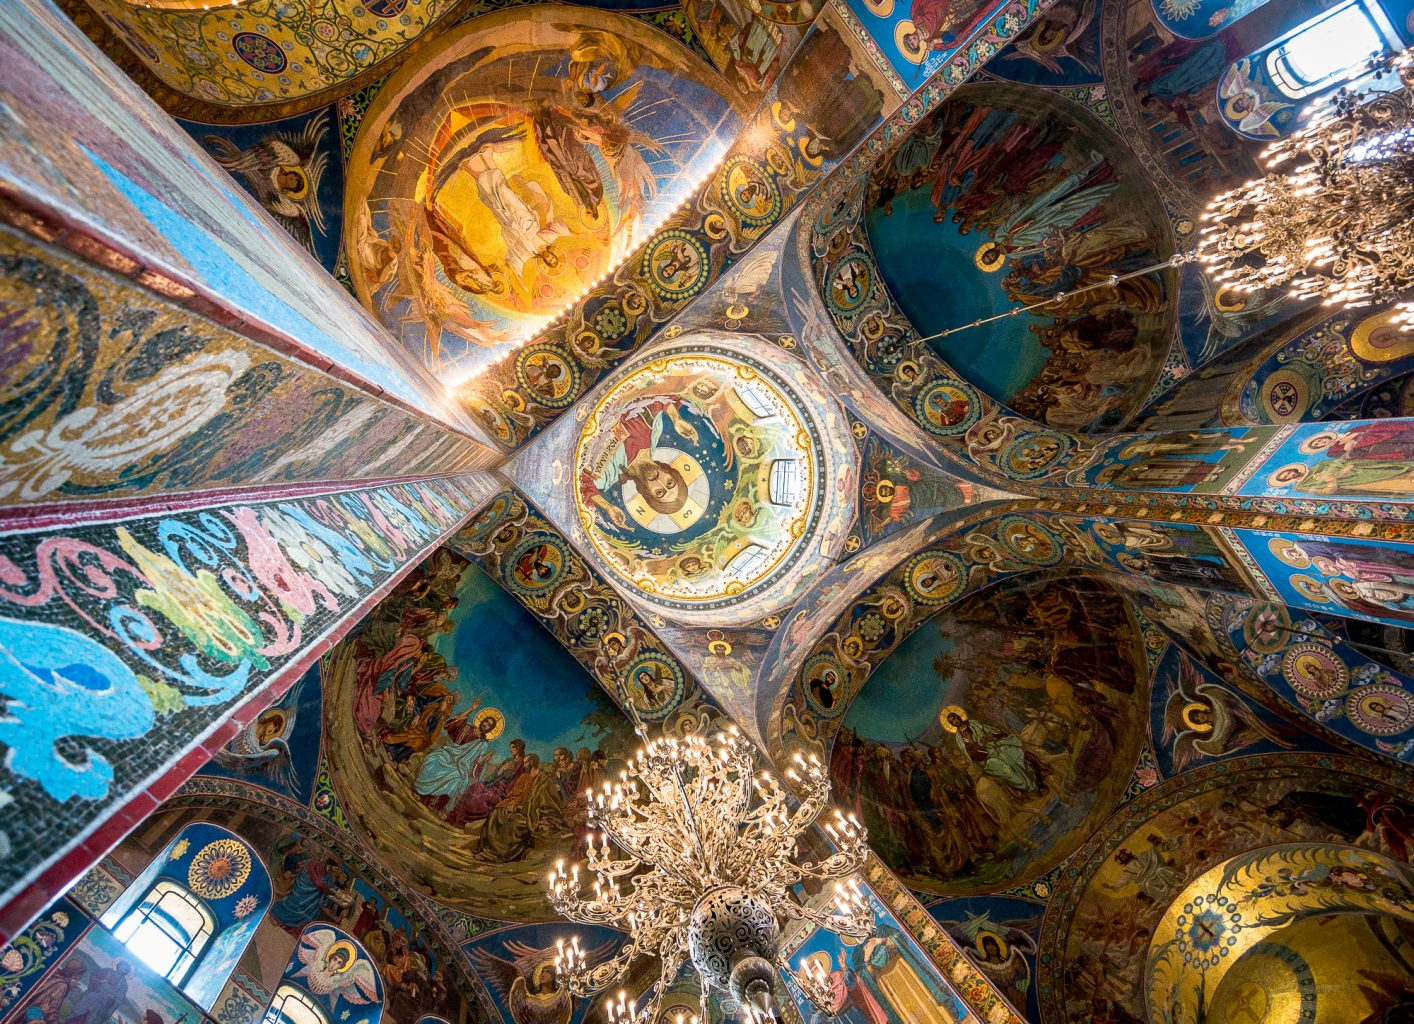 Church of the Savior on Spilled Blood columns, an example of combining travel and creativity